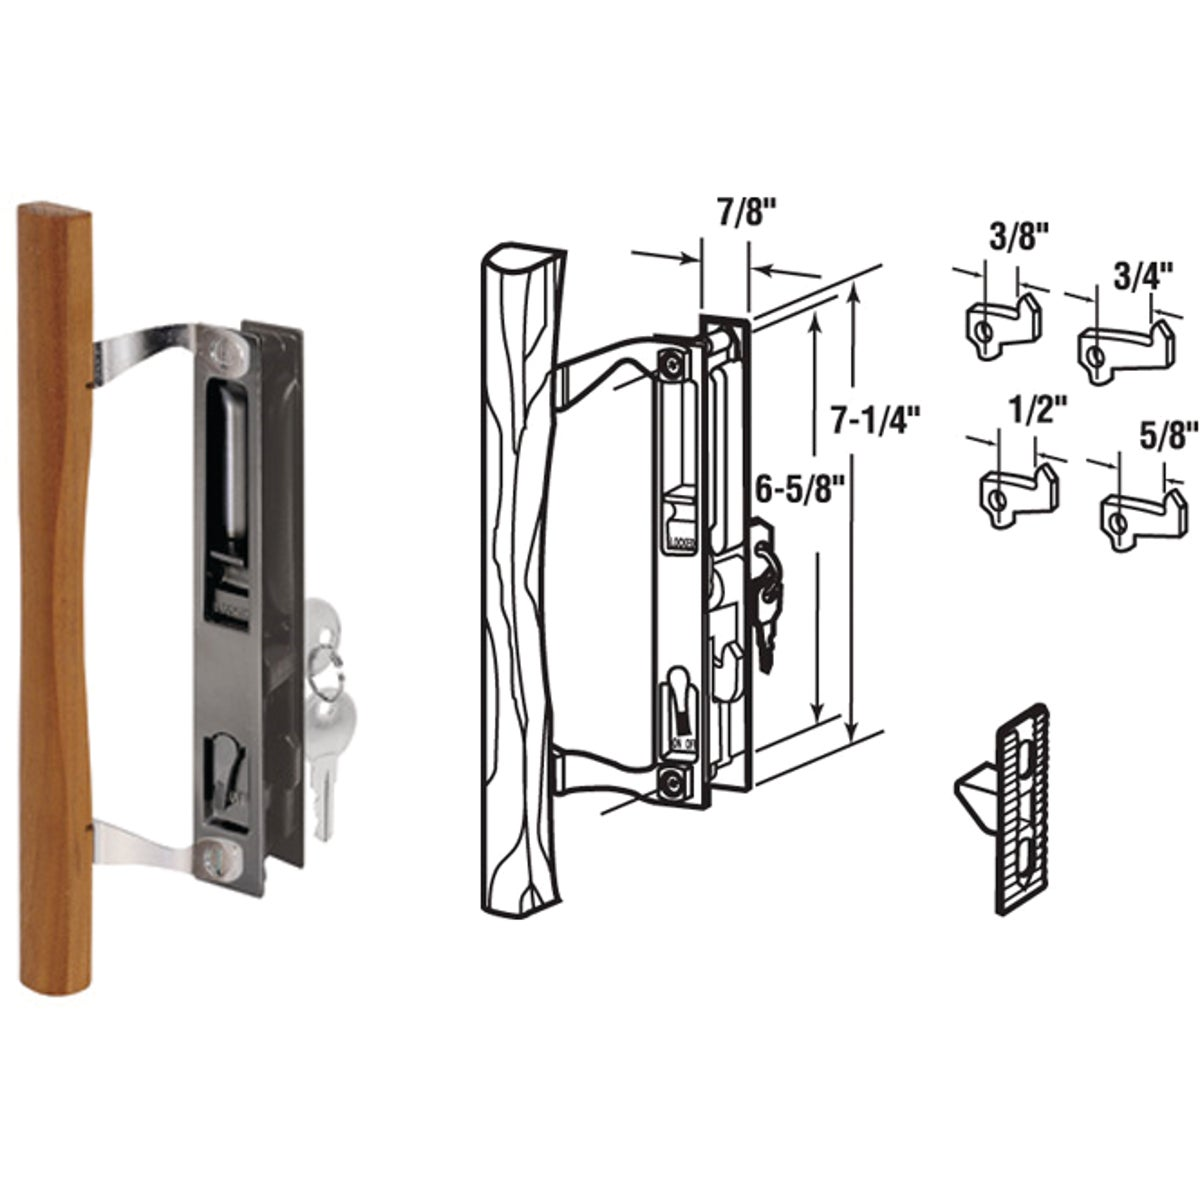 SLIDING DOOR HANDLESET - 141638 by Prime Line Products